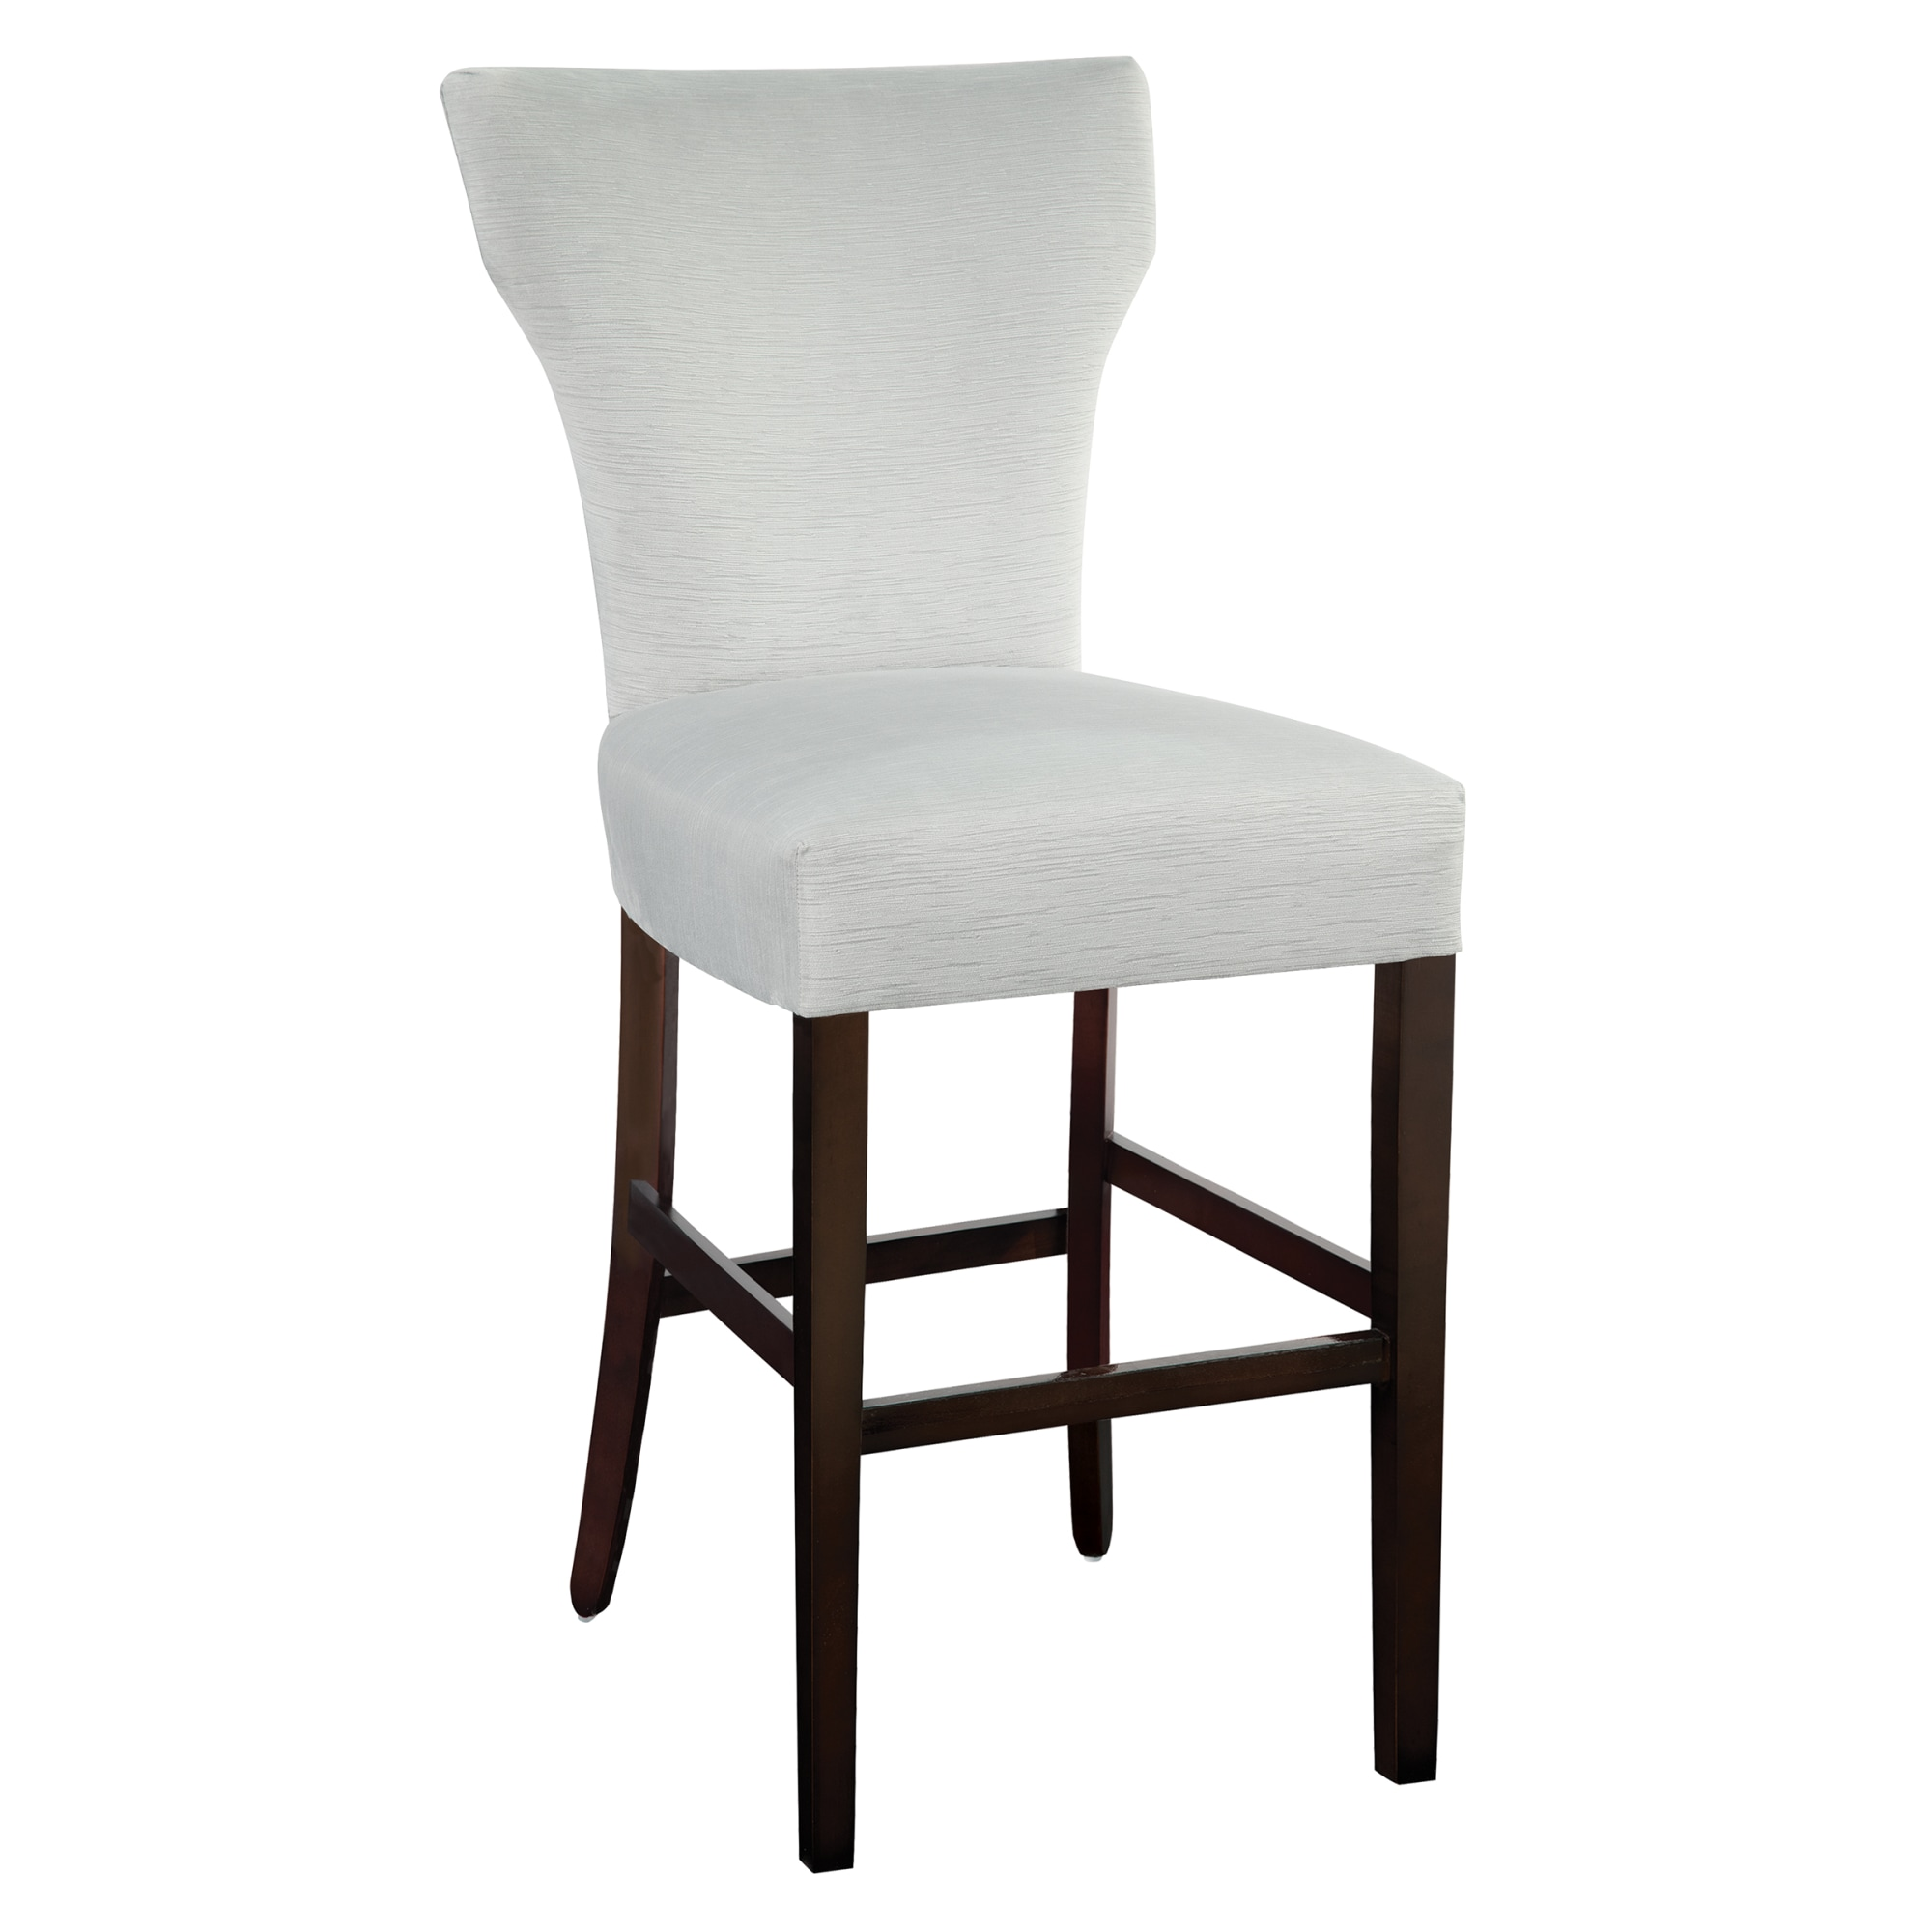 Image for 7407 Julianne Bar Stool from Hekman Official Website